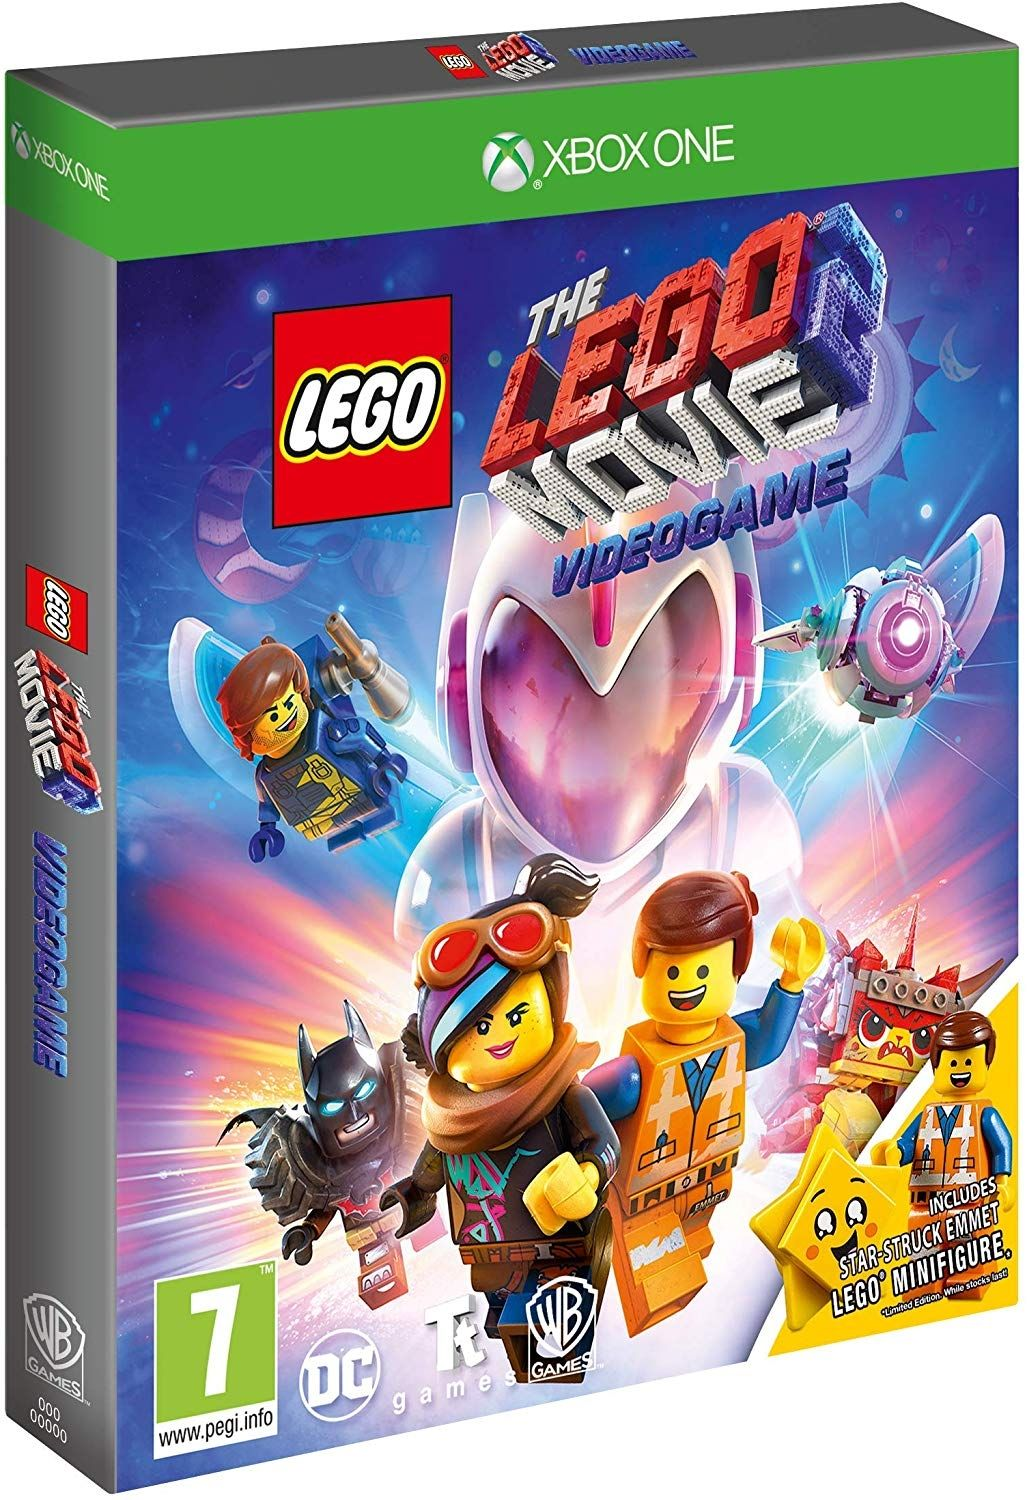 LEGO Movie 2: The Videogame Toy Edition (Xbox One) - 1